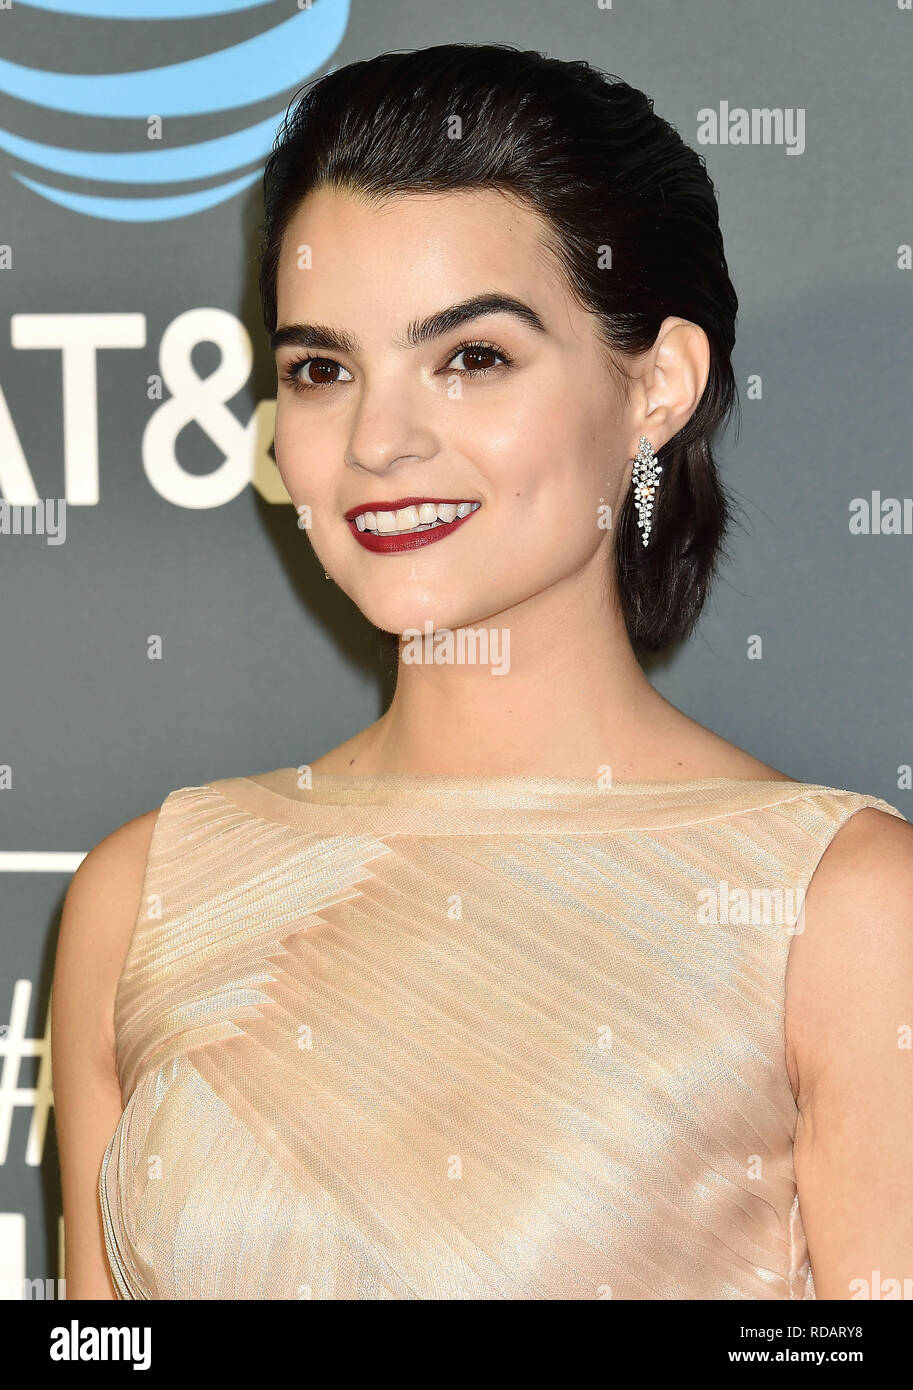 Brianna Hildebrand Stock Photos Brianna Hildebrand Stock Images